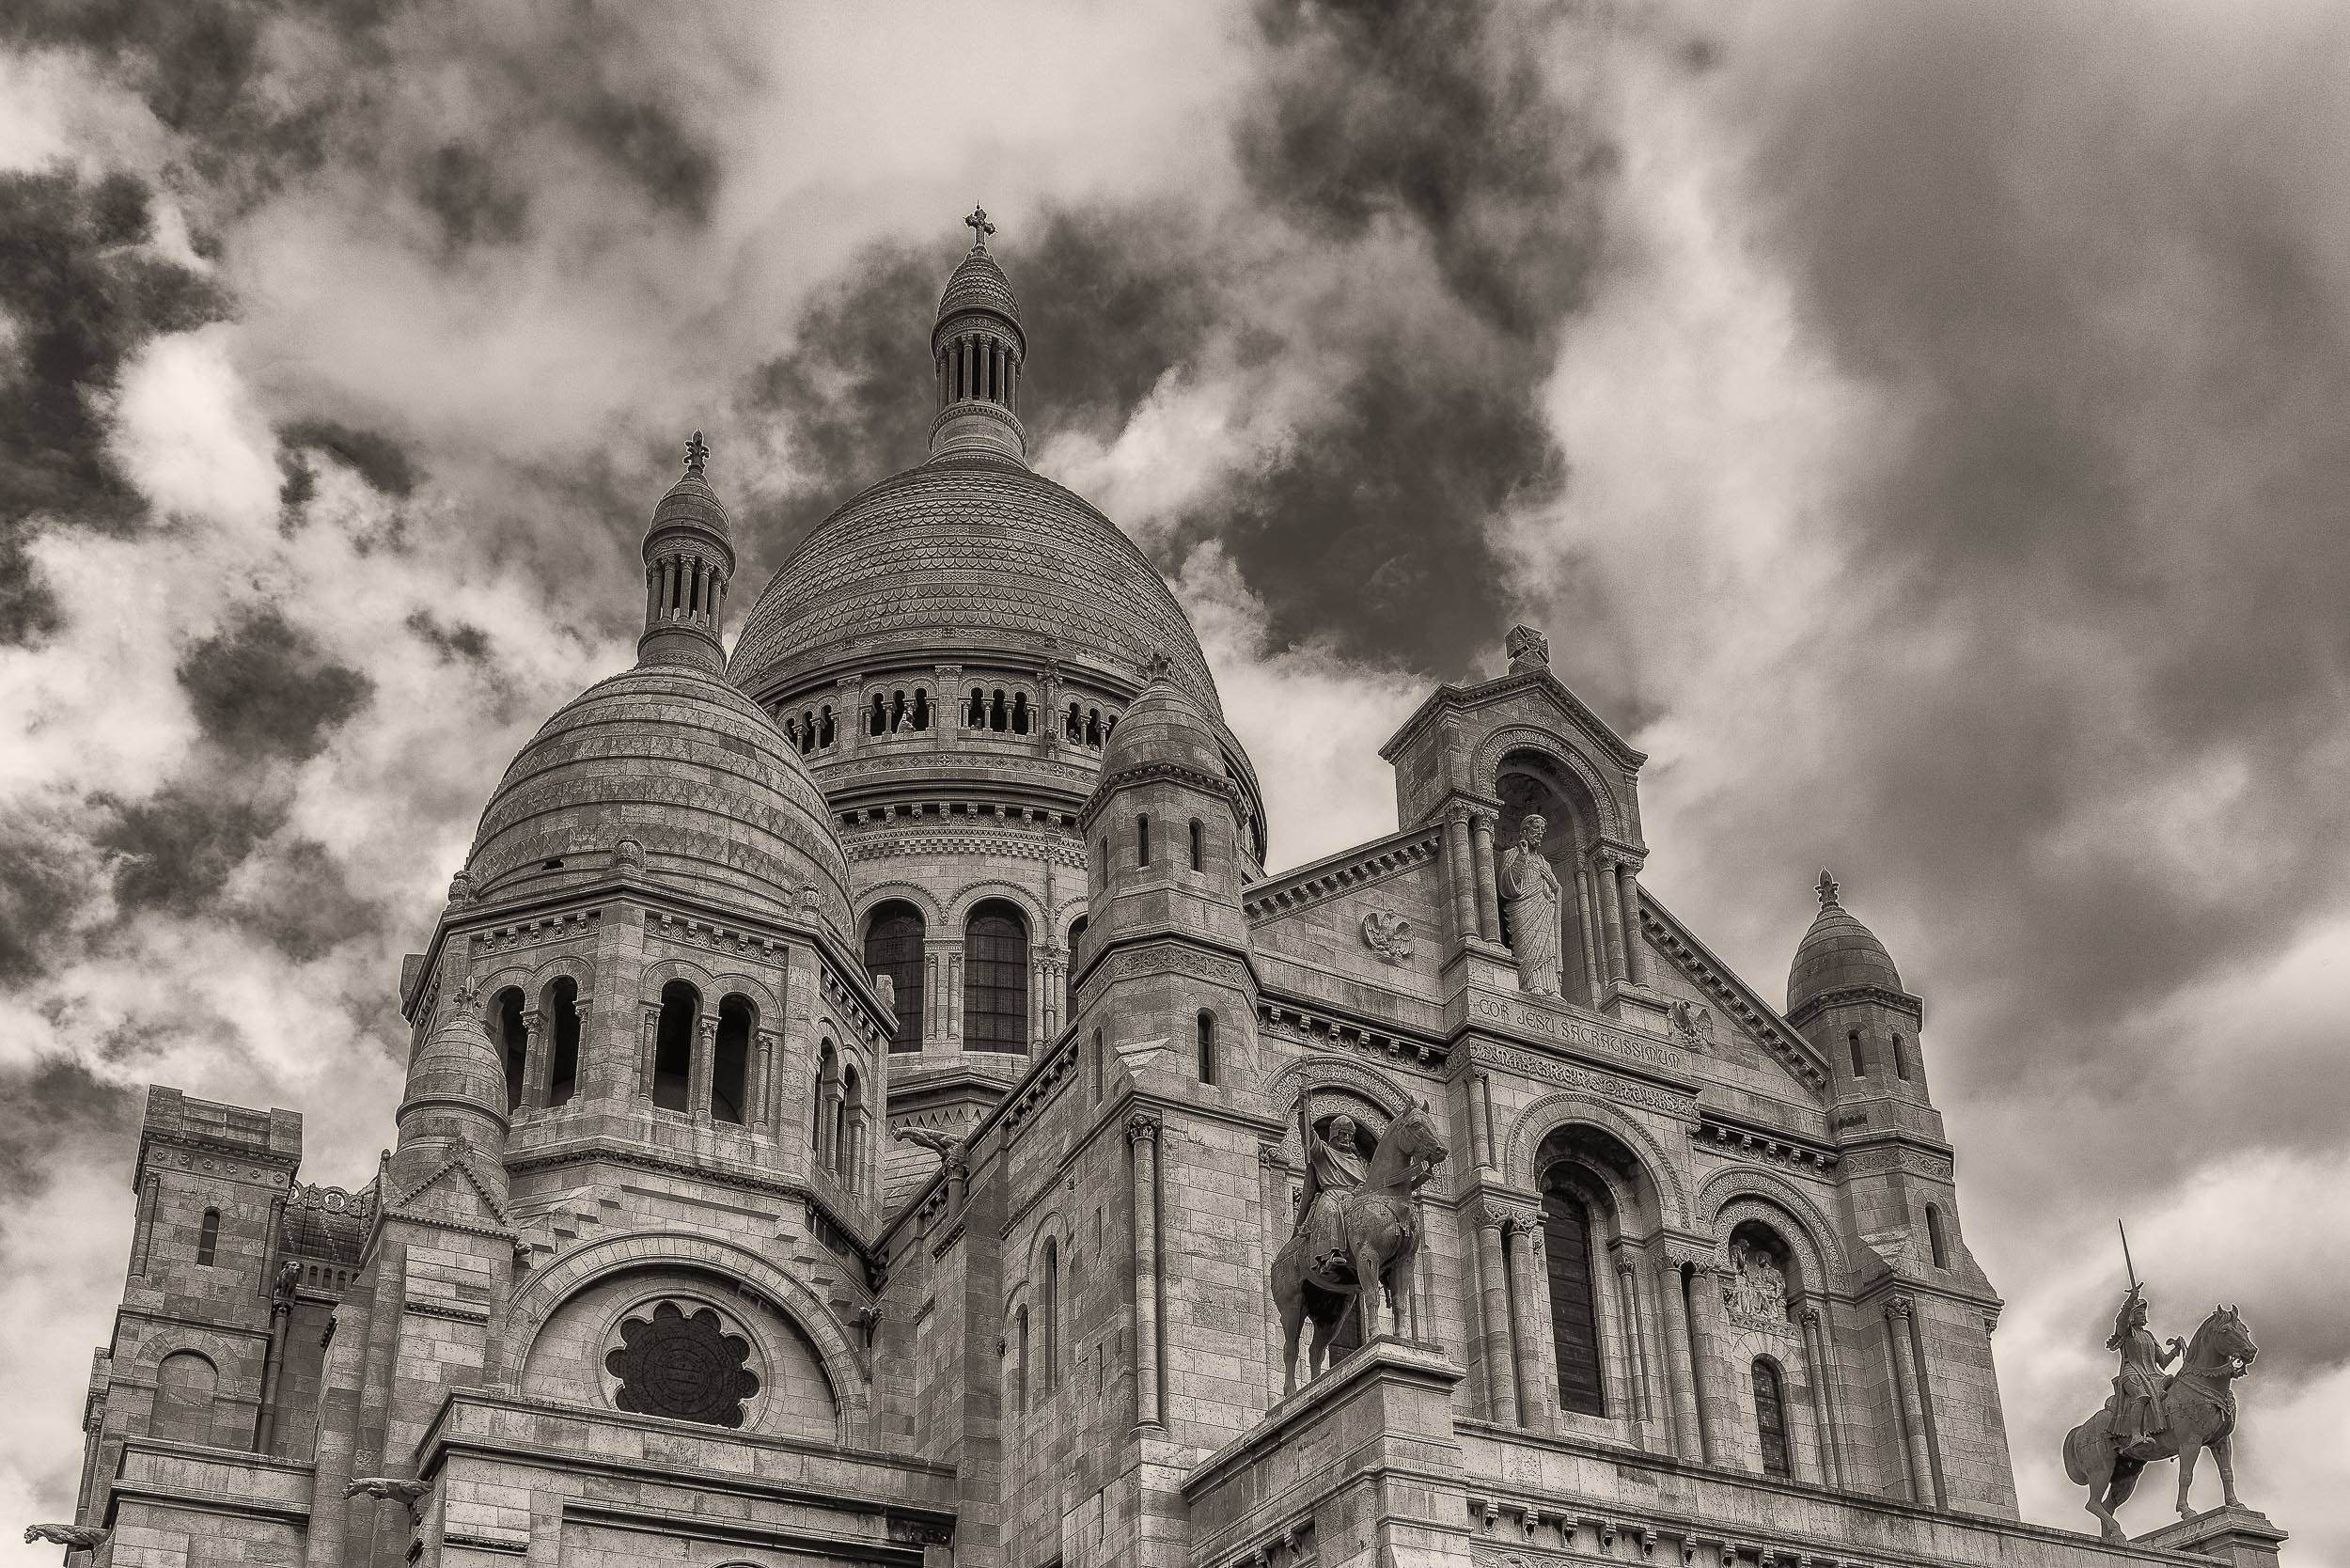 A view up towards the    domes and stautes    that feature so dominantly on the exterior of the    Sacre Coeur Basilica    in    Paris, France   .